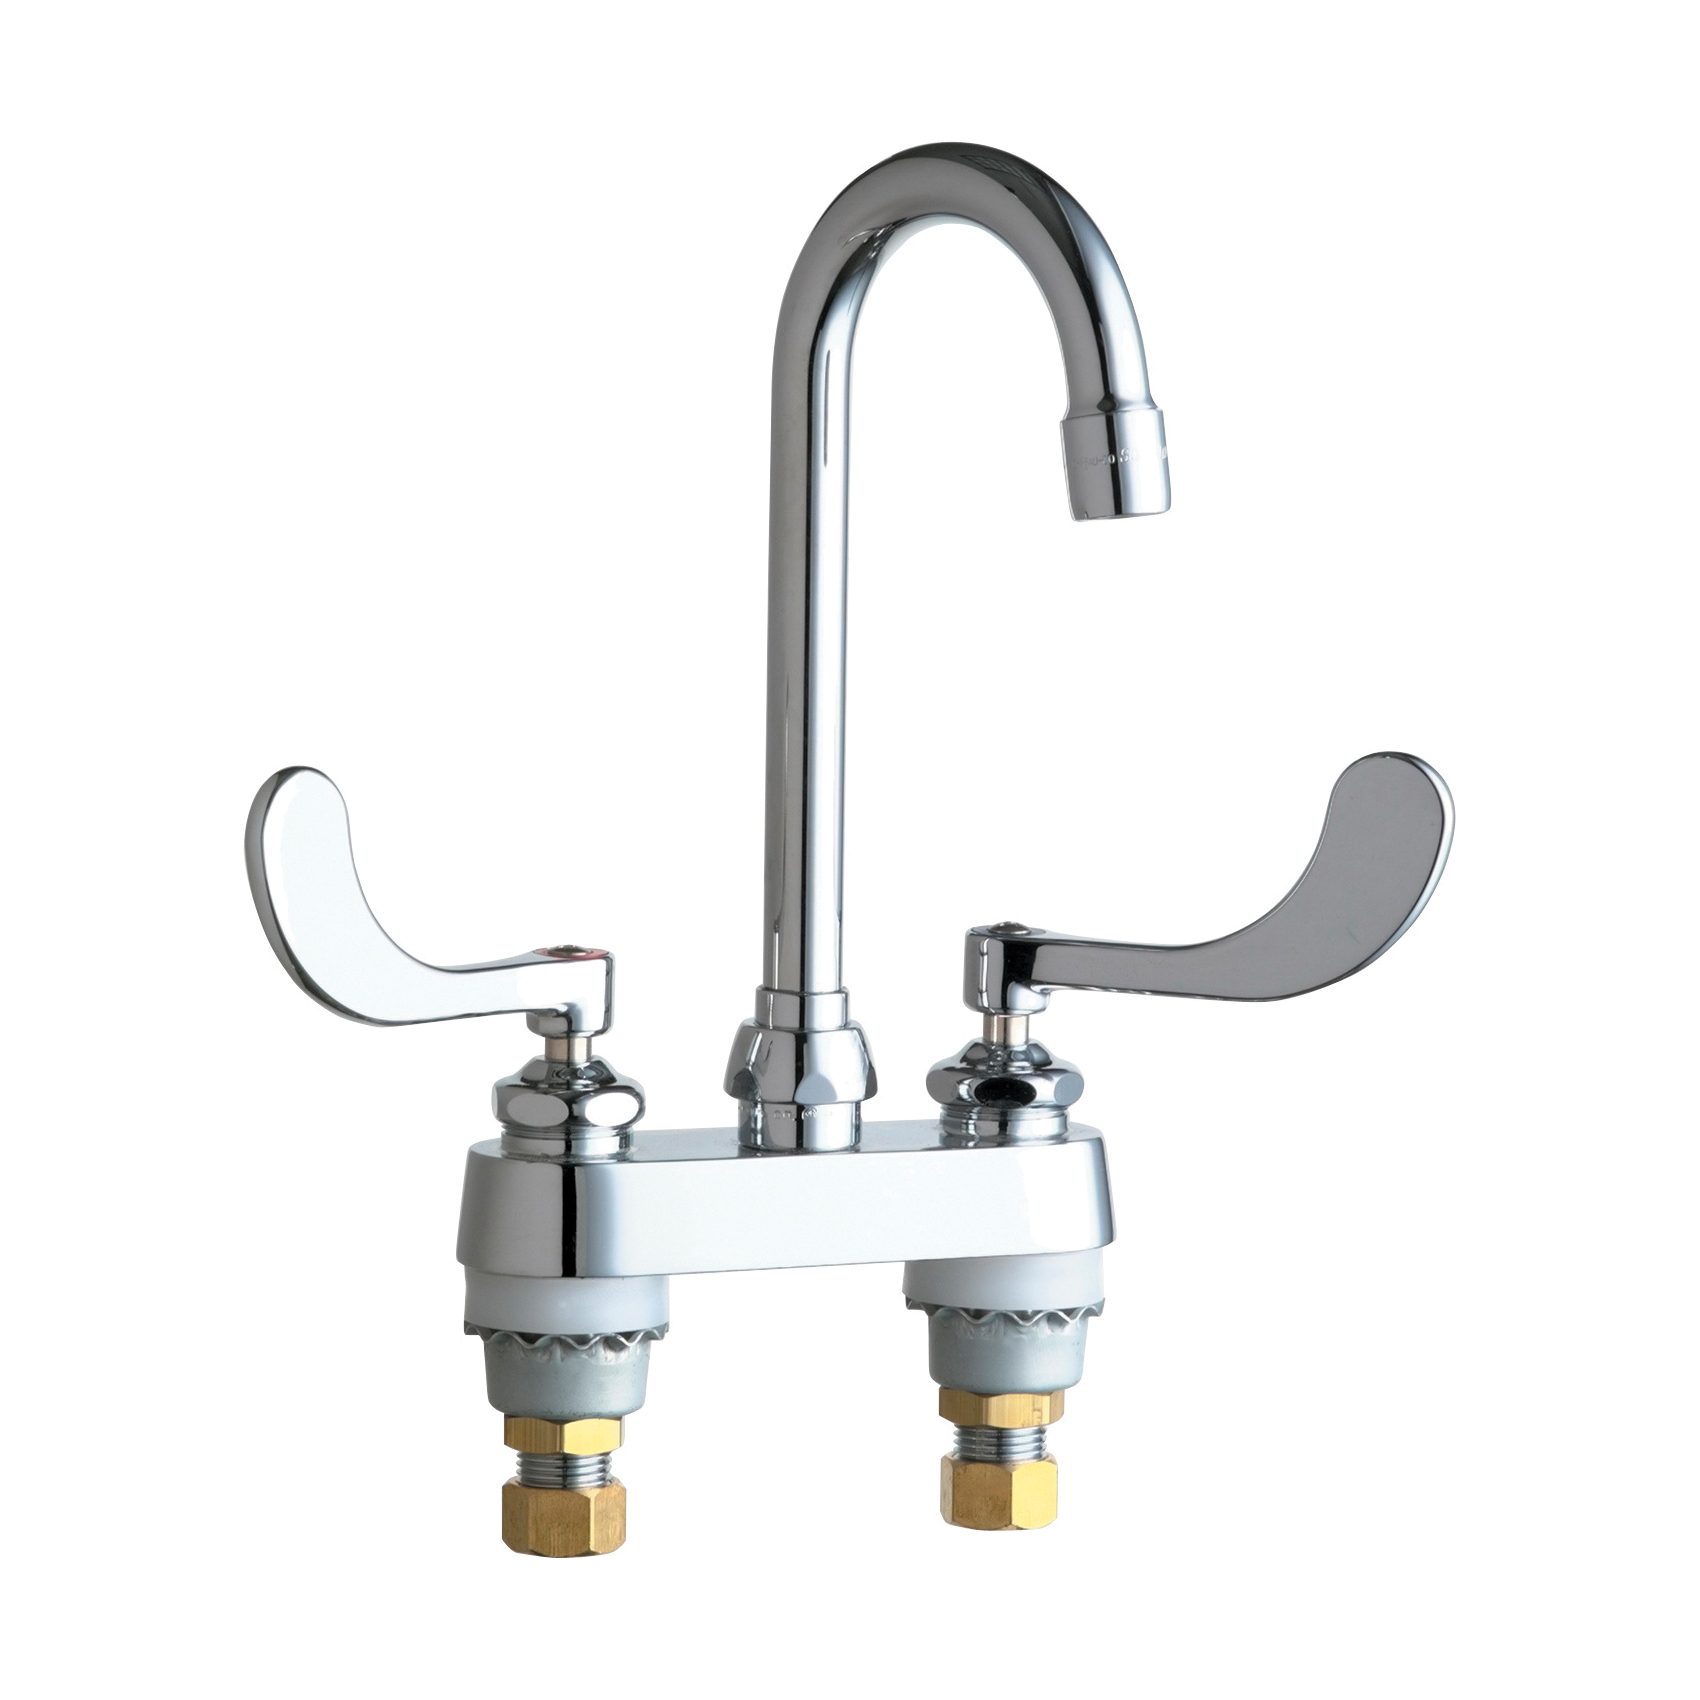 Chicago Faucet® 895-317ABCP Lavatory Sink Faucet, Chrome Plated, 2 Handles, 2.2 gpm